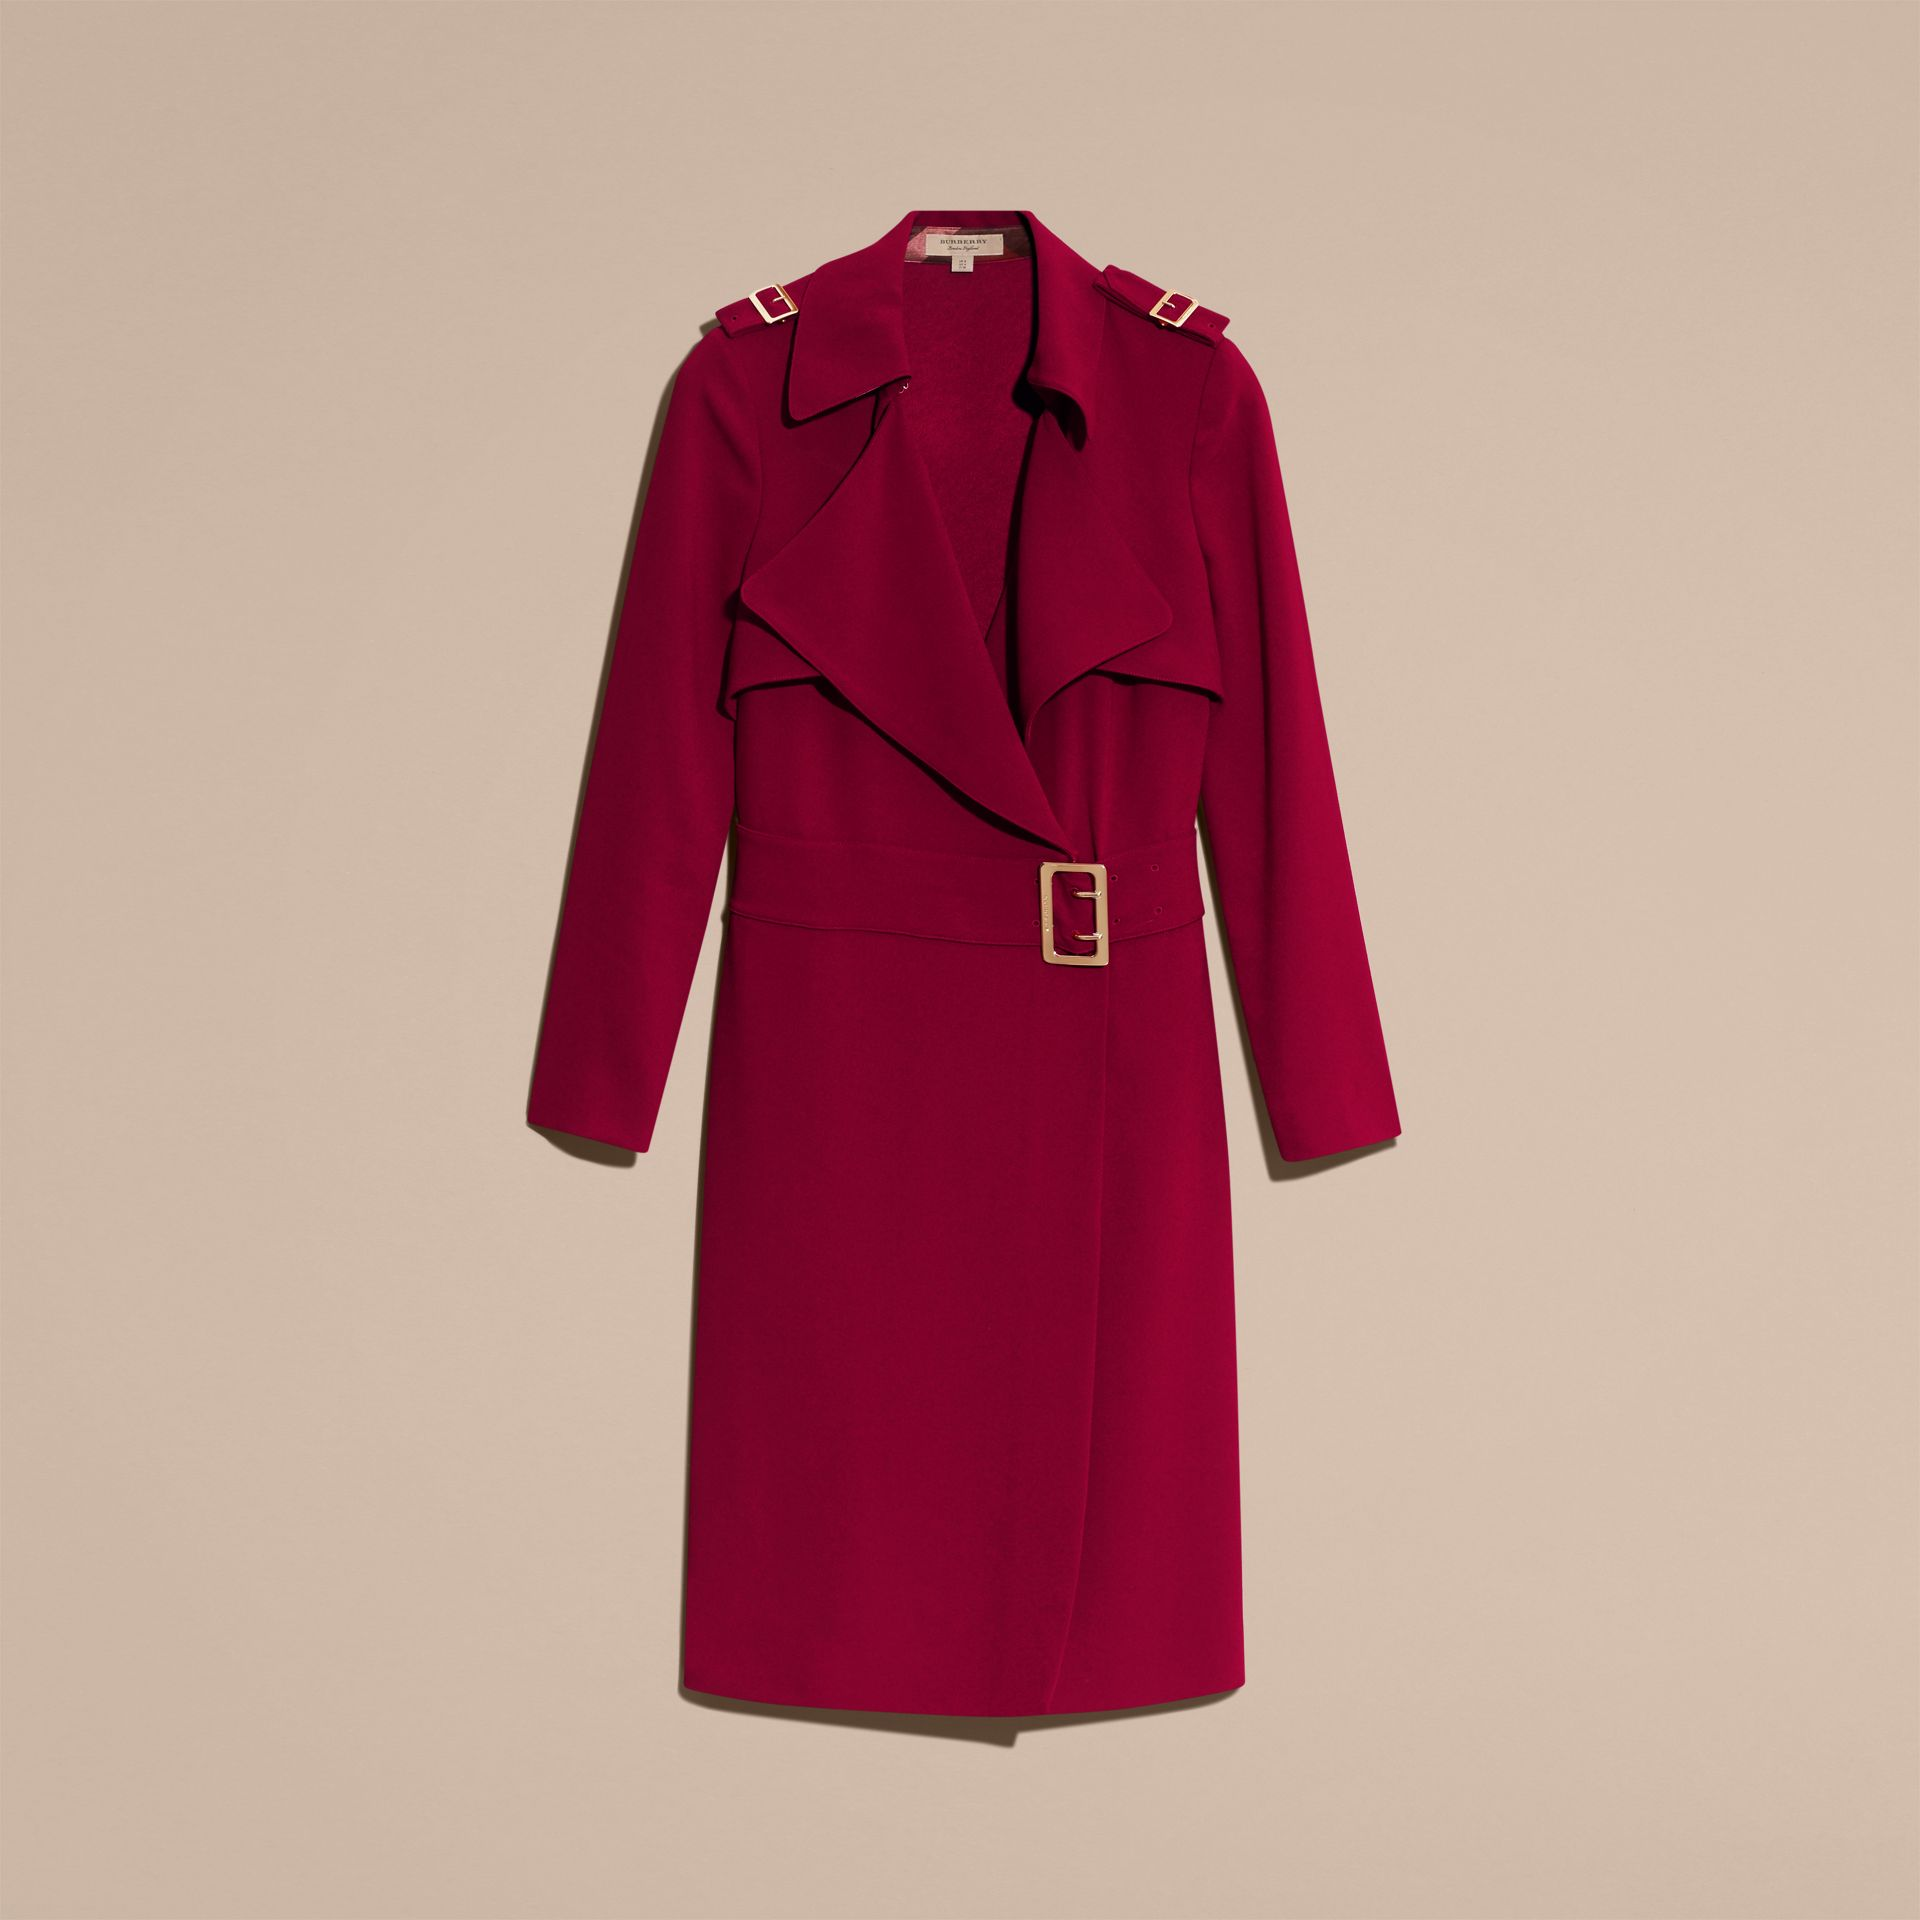 Garnet Buckle Detail Satin-back Crepe Trench Dress Garnet - gallery image 4